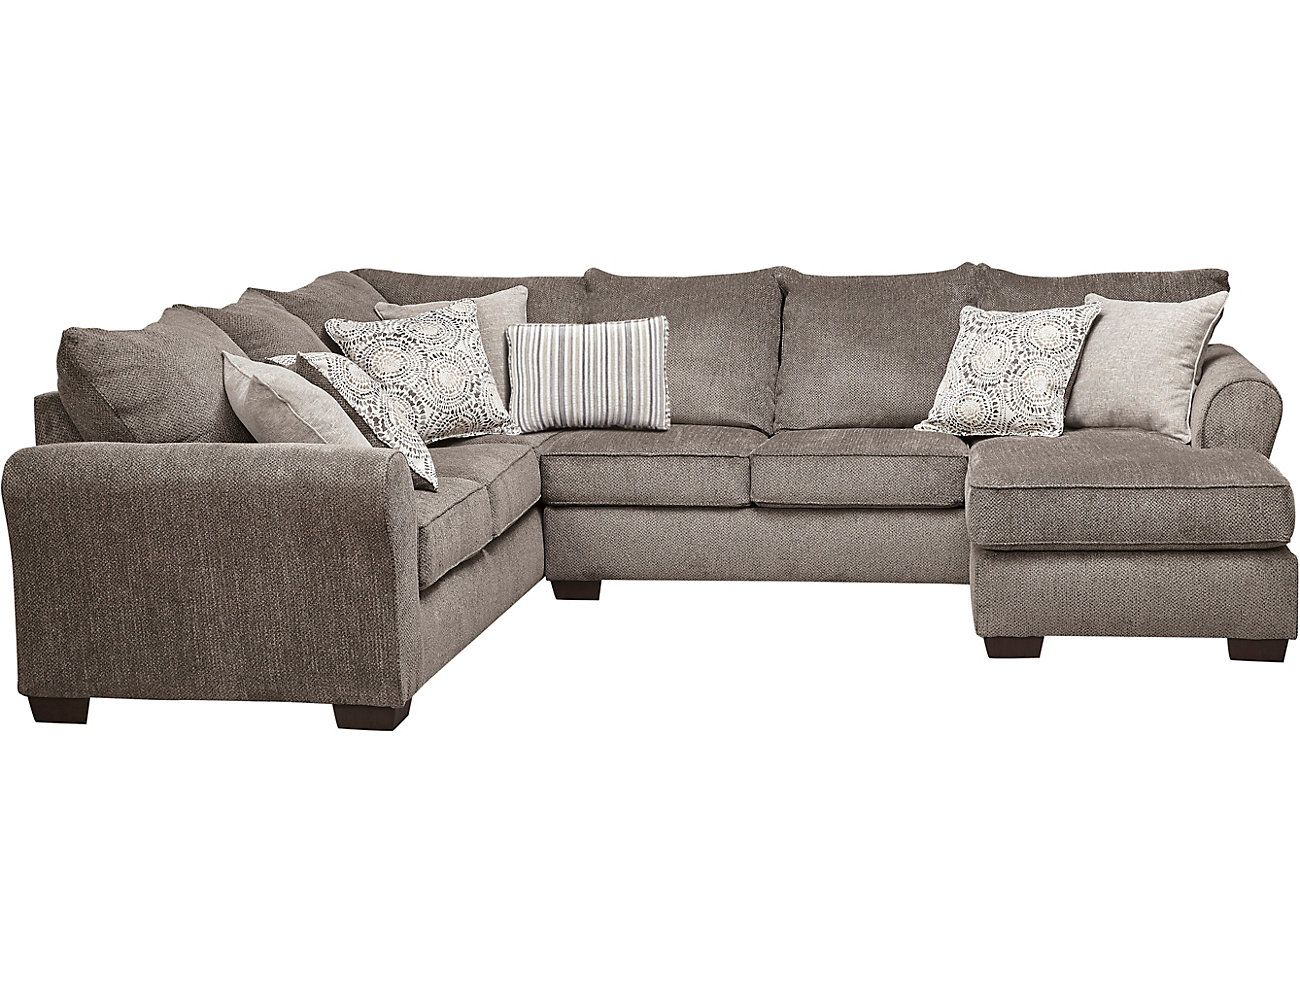 Best Harlow Ash 2 Piece Sleeper Sectional Outlet At Art Van 640 x 480